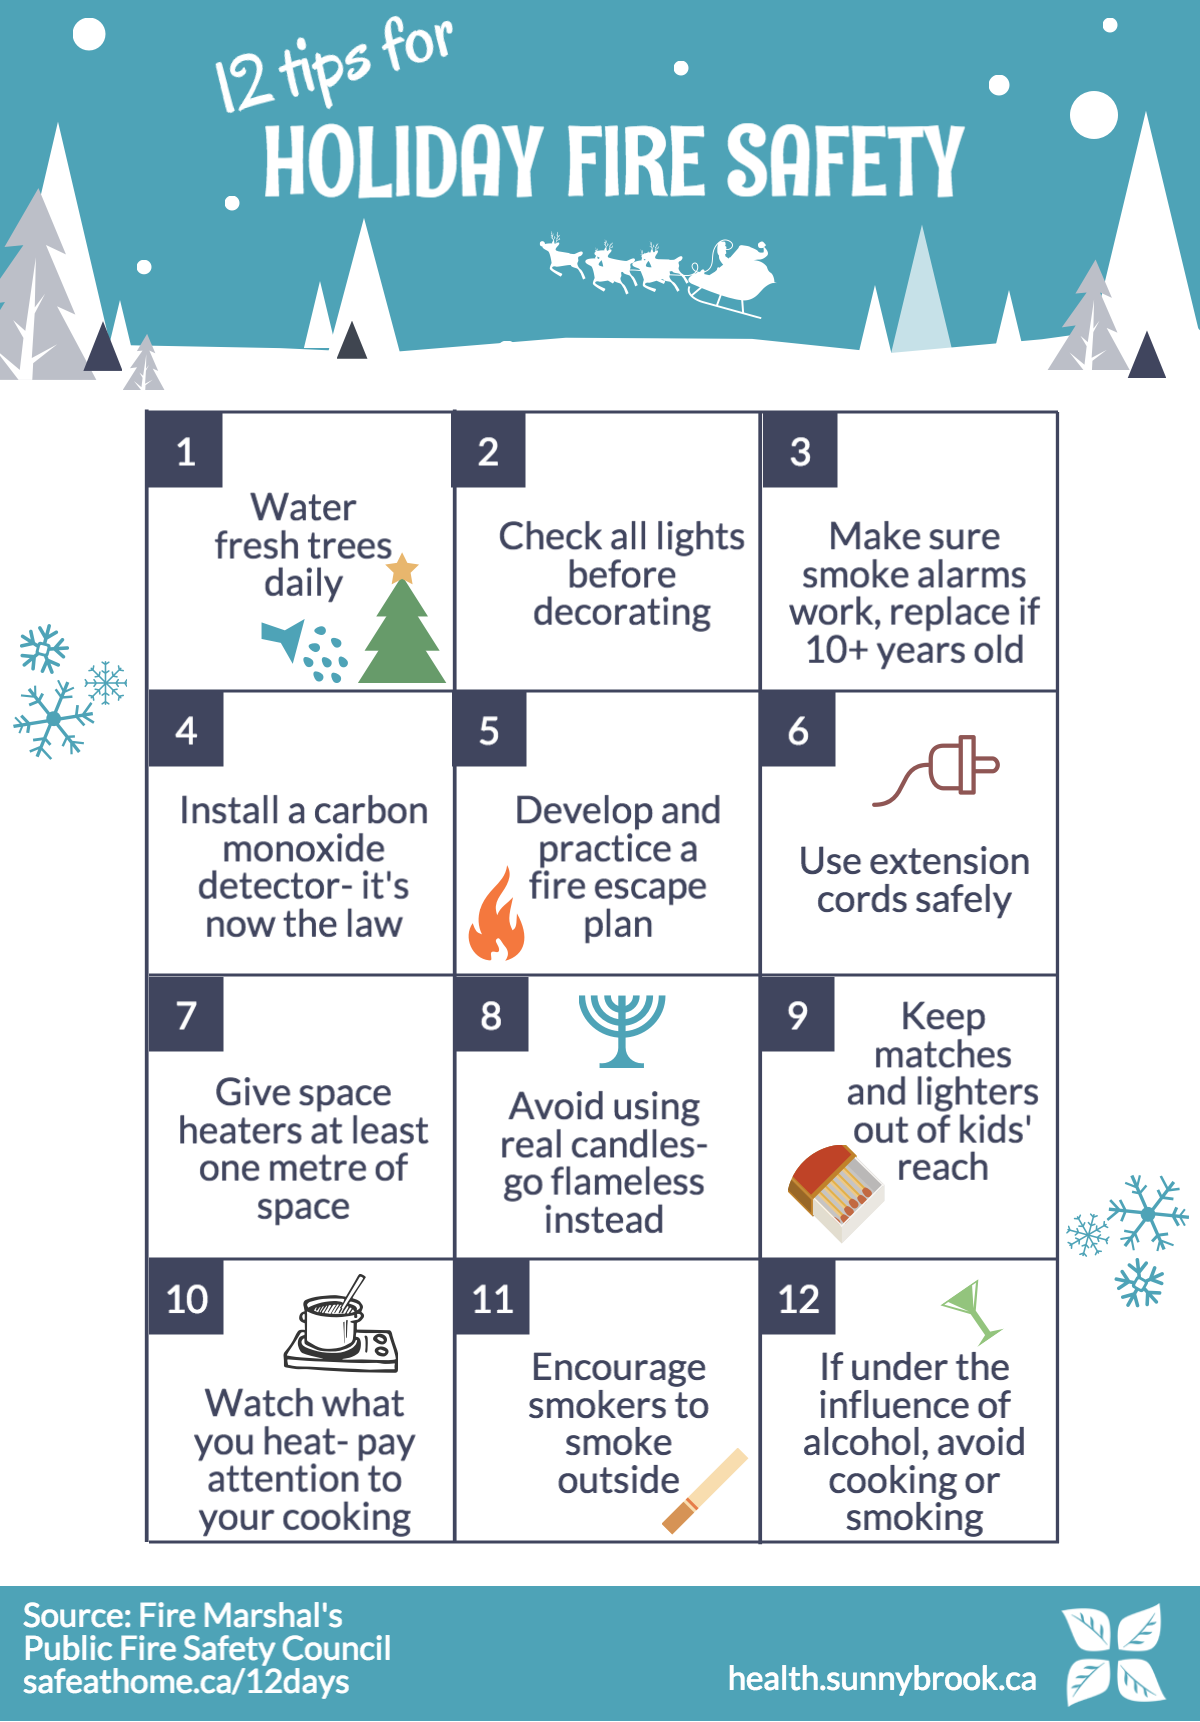 12 fire safety tips for the holidays Fire safety tips